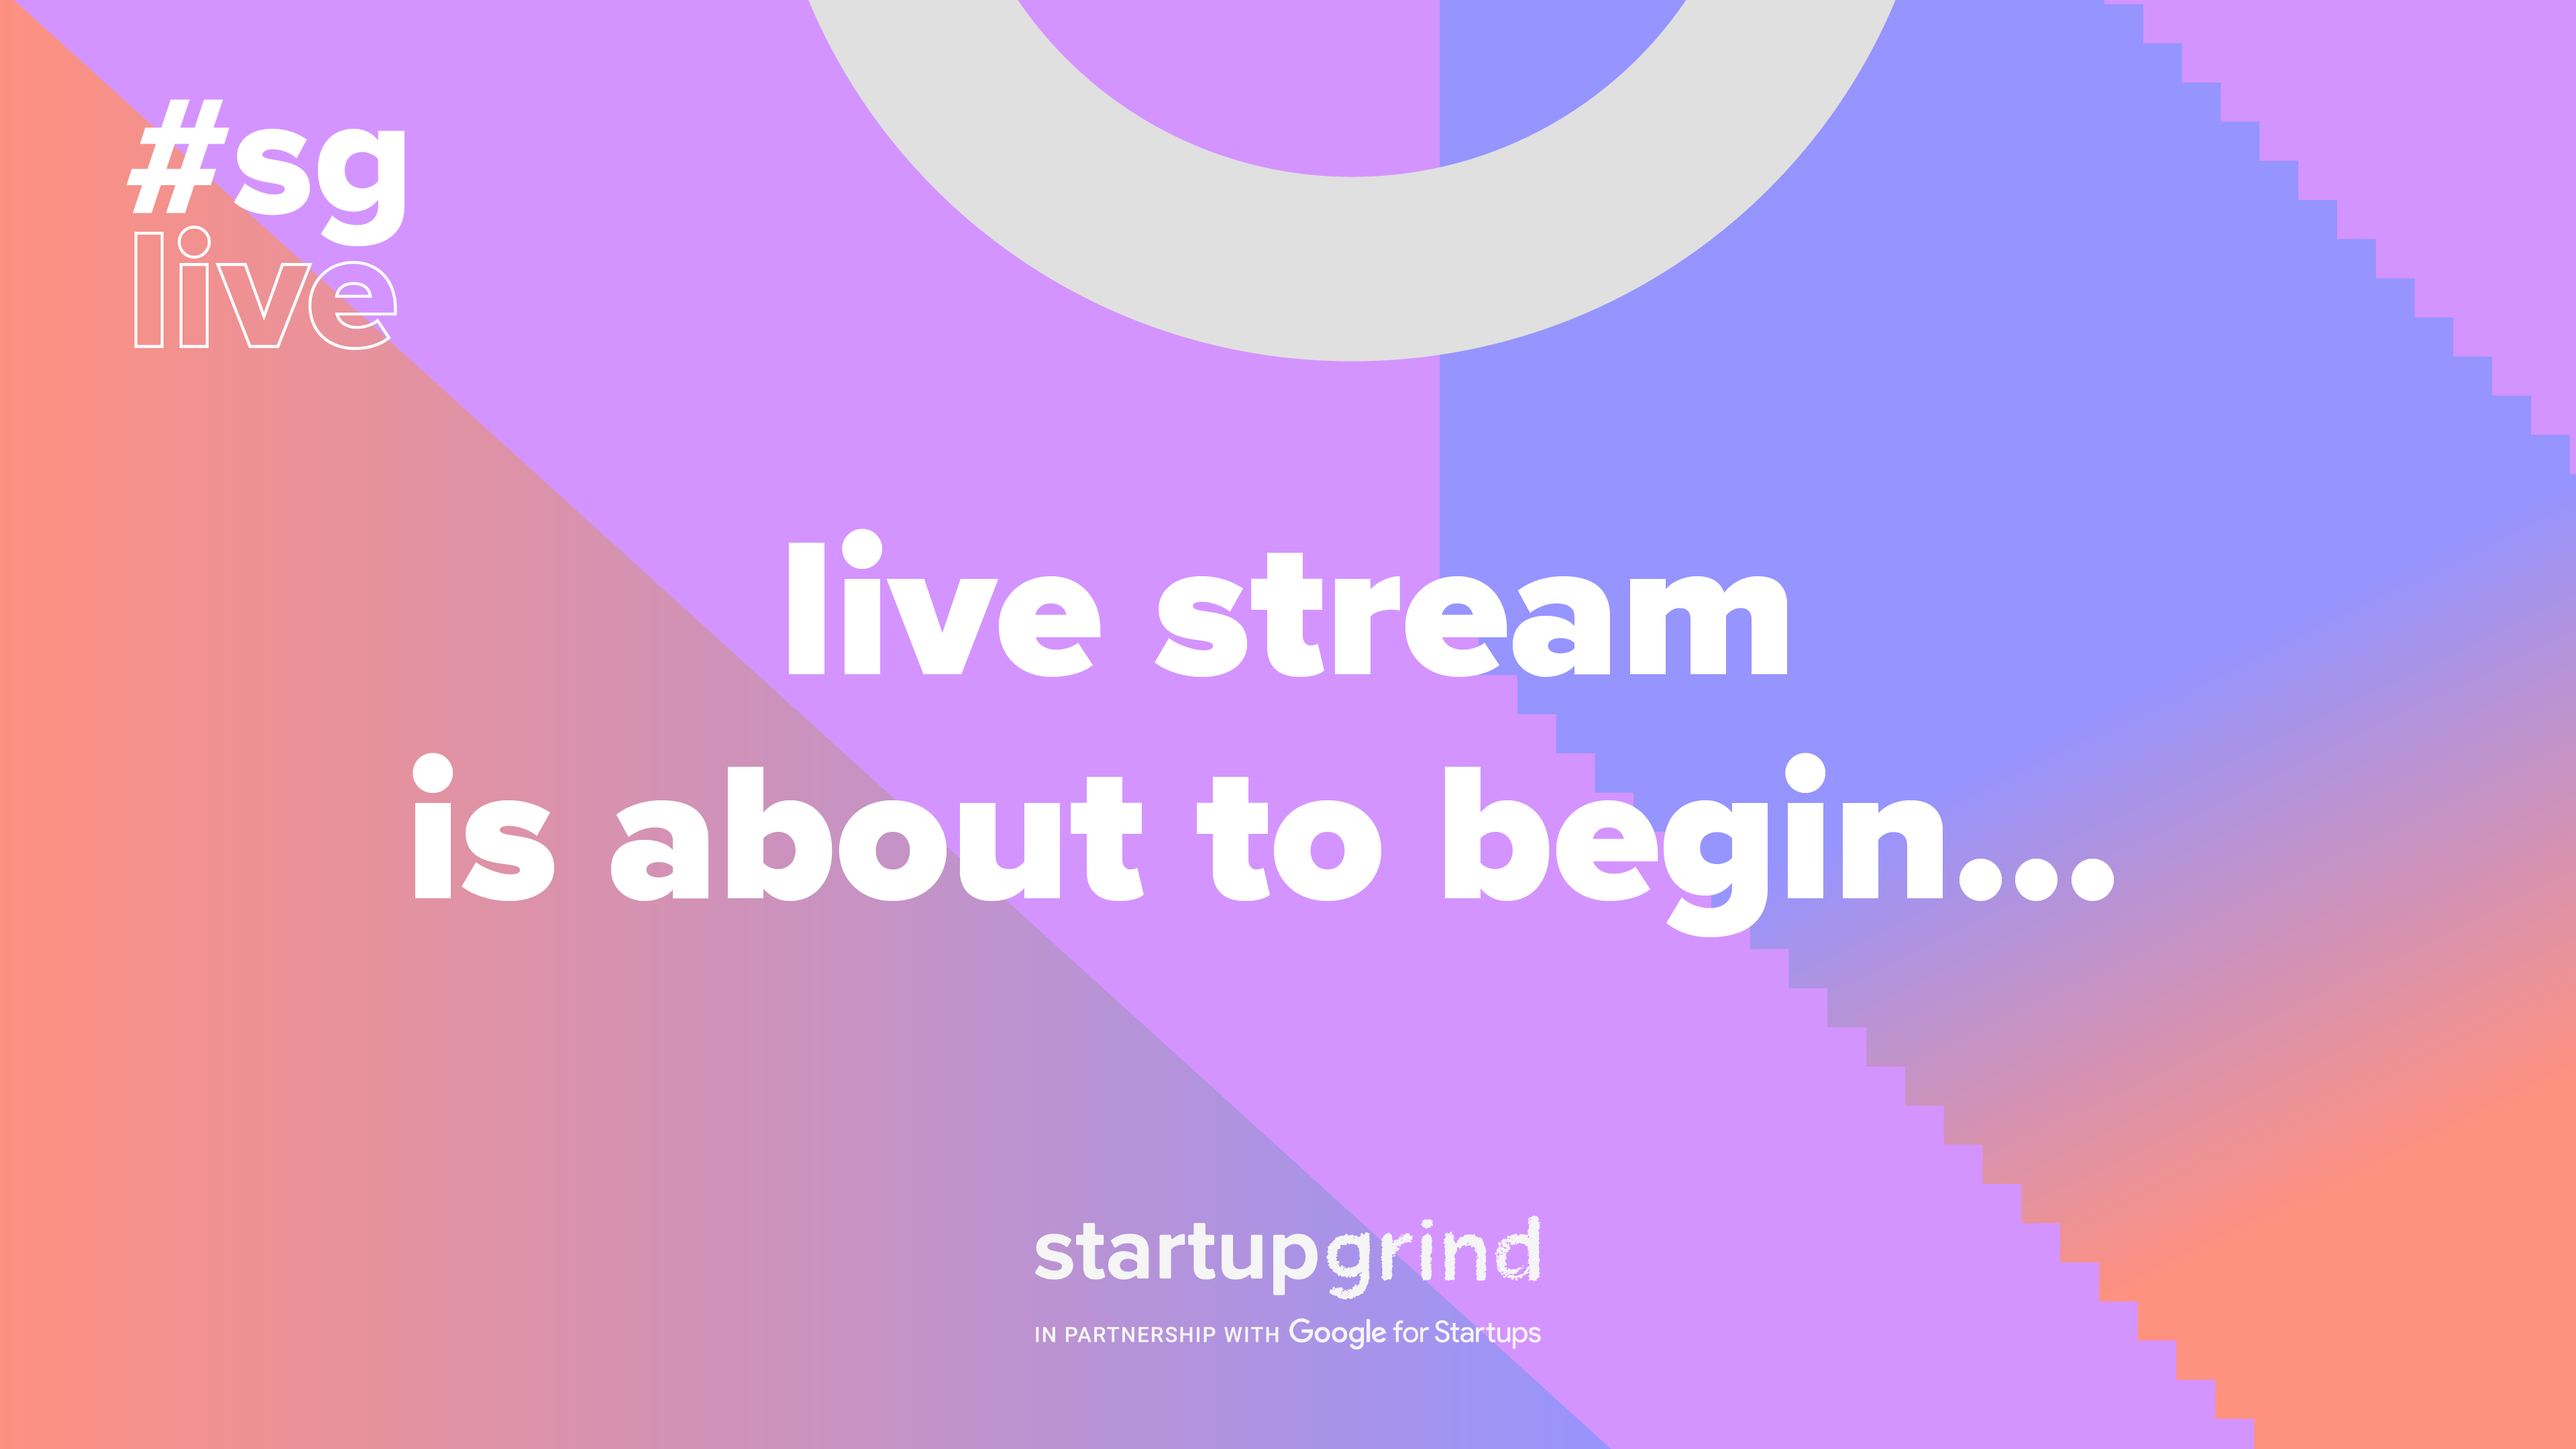 Join us for a LIVE Fireside Chat from Startup Grind London with Scott Kupor from Andreessen Horowitz and Thorold Barker from The Wall Street Journal.